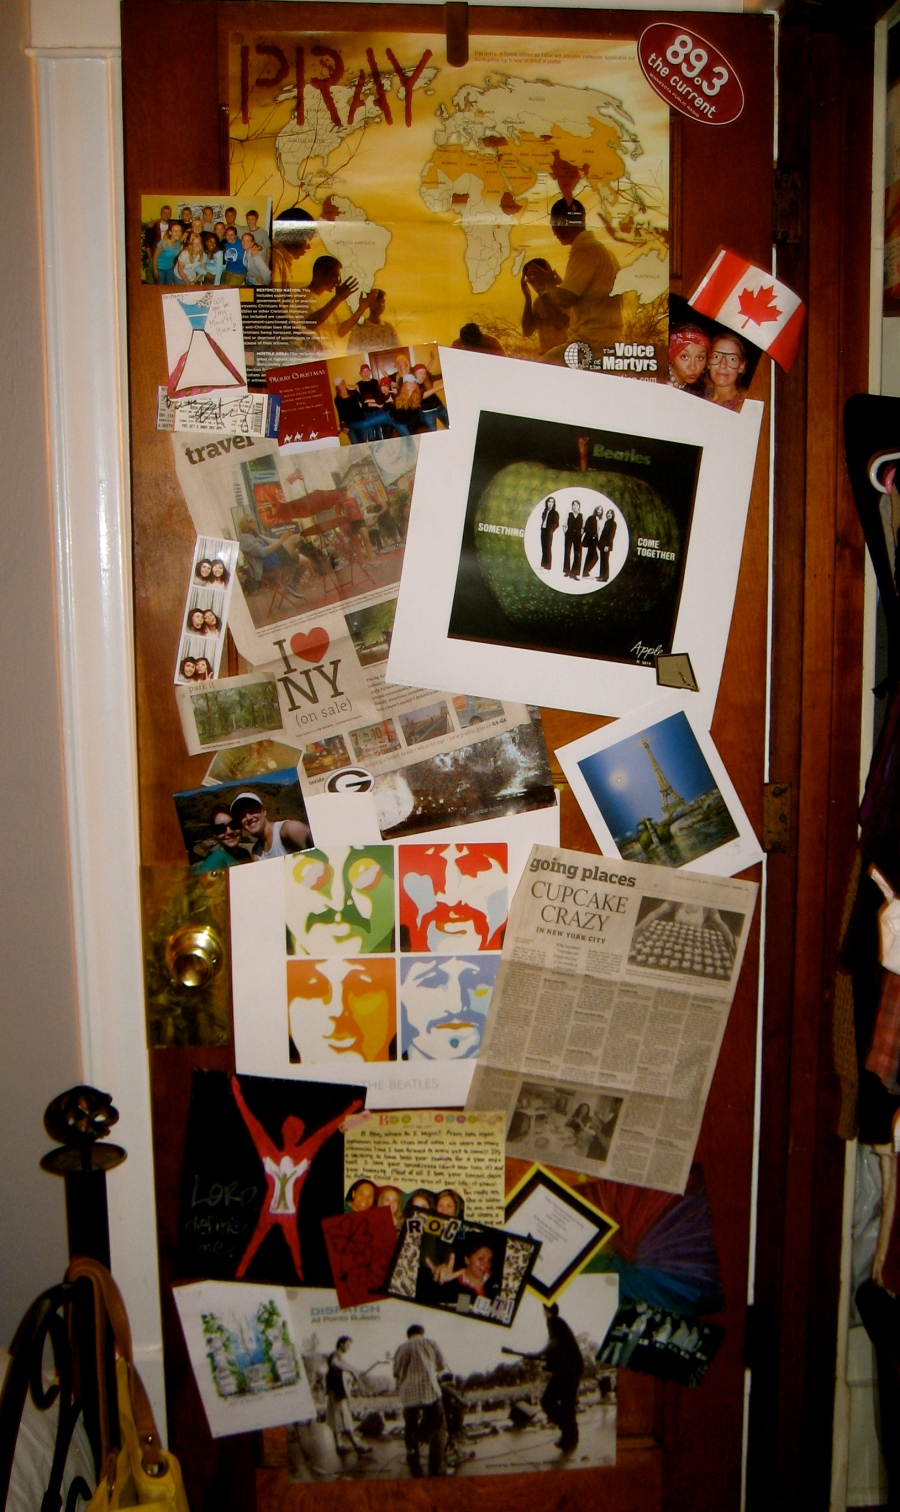 The insdie of my closet door...I had to have a collage somewhere...